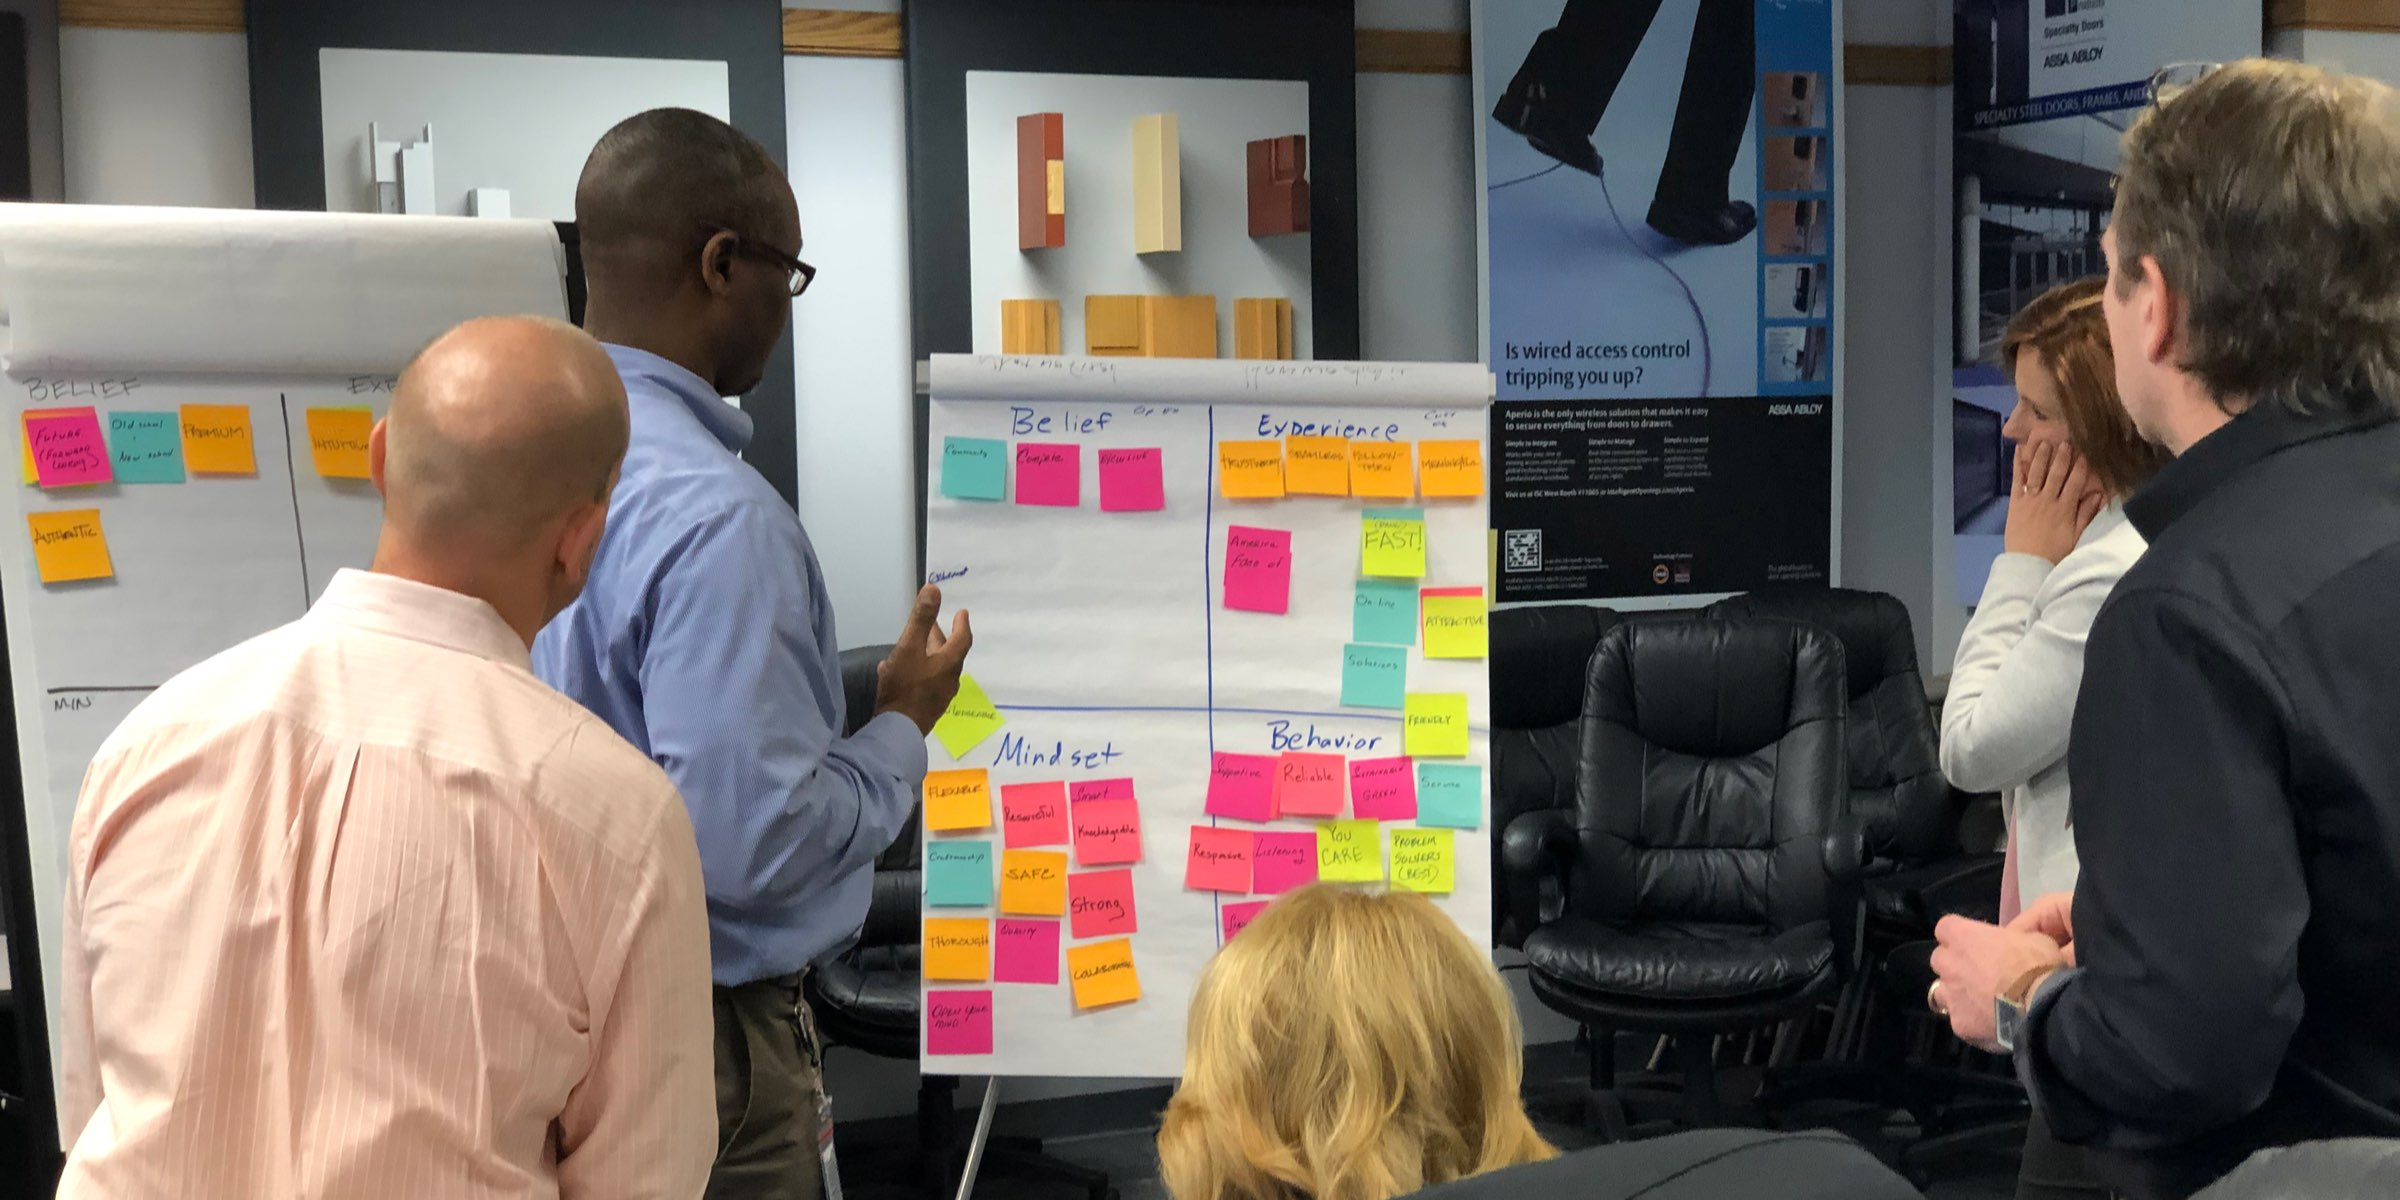 Our Brand Values workshop